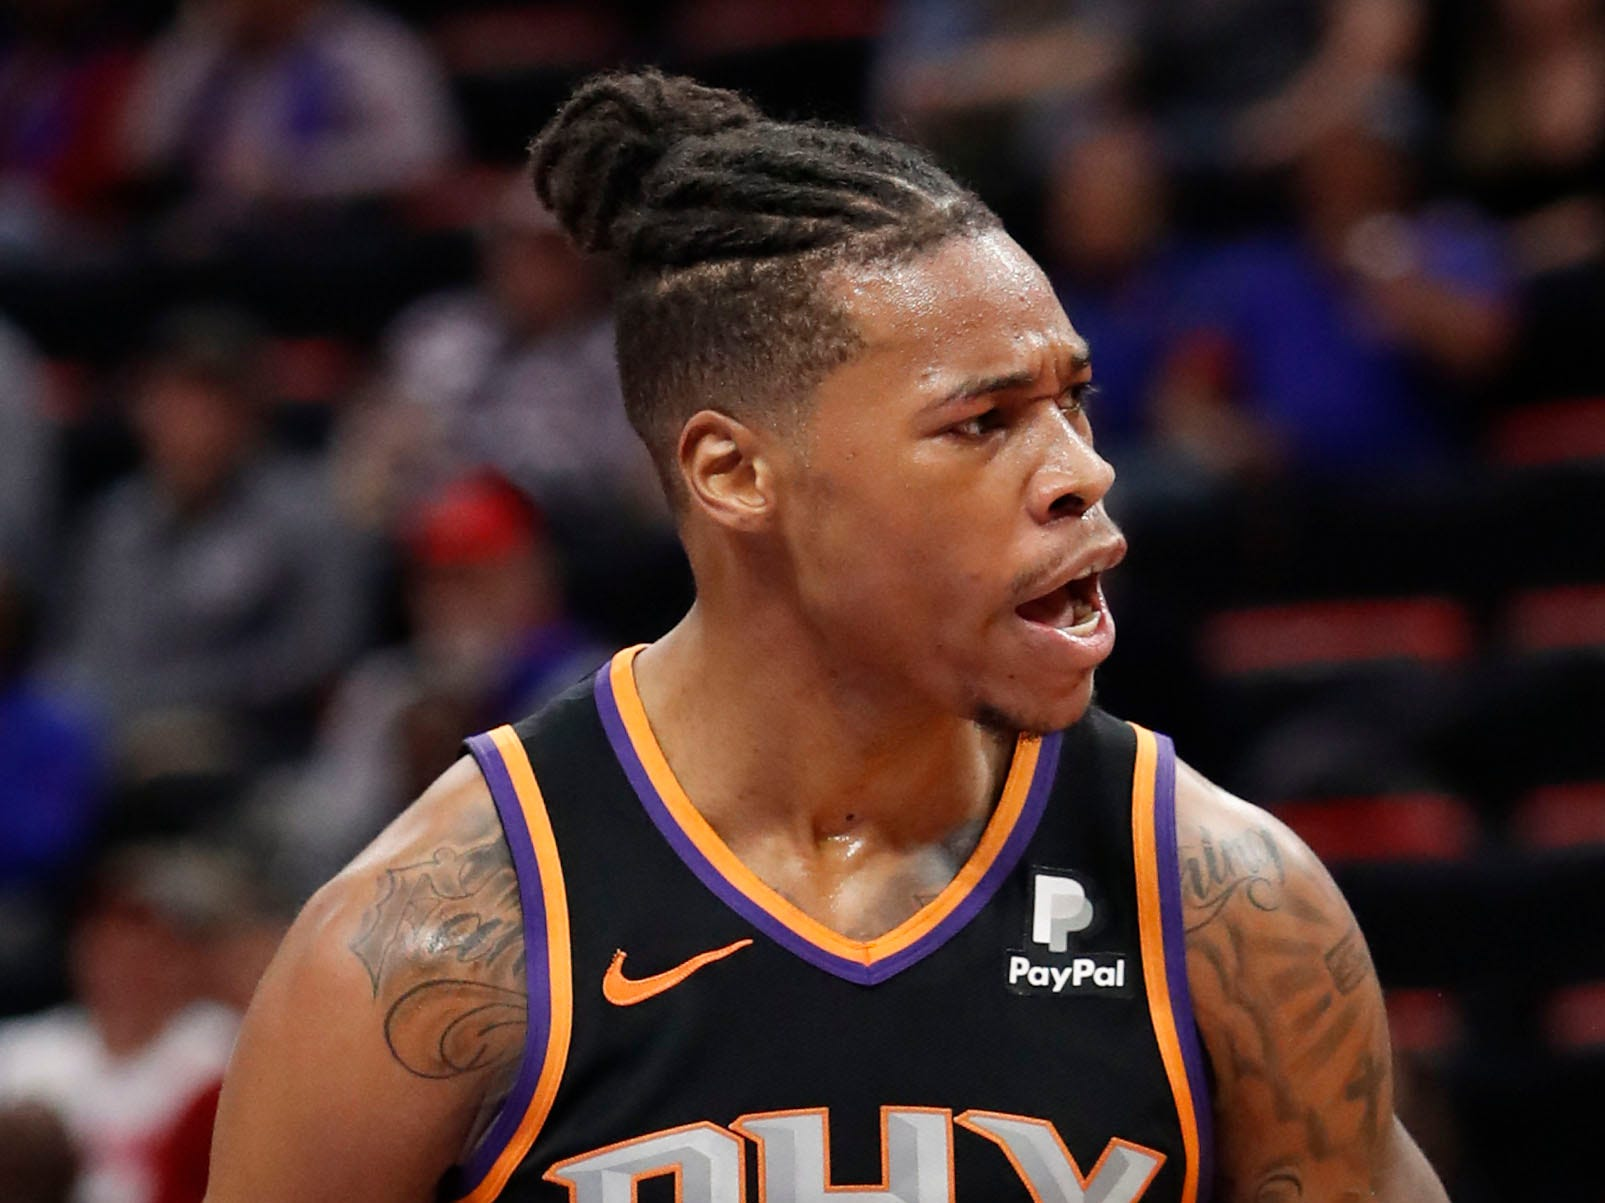 Nov 25, 2018; Detroit, MI, USA; Phoenix Suns forward Richaun Holmes (21) reacts after making a shot and getting fouled during the fourth quarter against the Detroit Pistons at Little Caesars Arena. Mandatory Credit: Raj Mehta-USA TODAY Sports